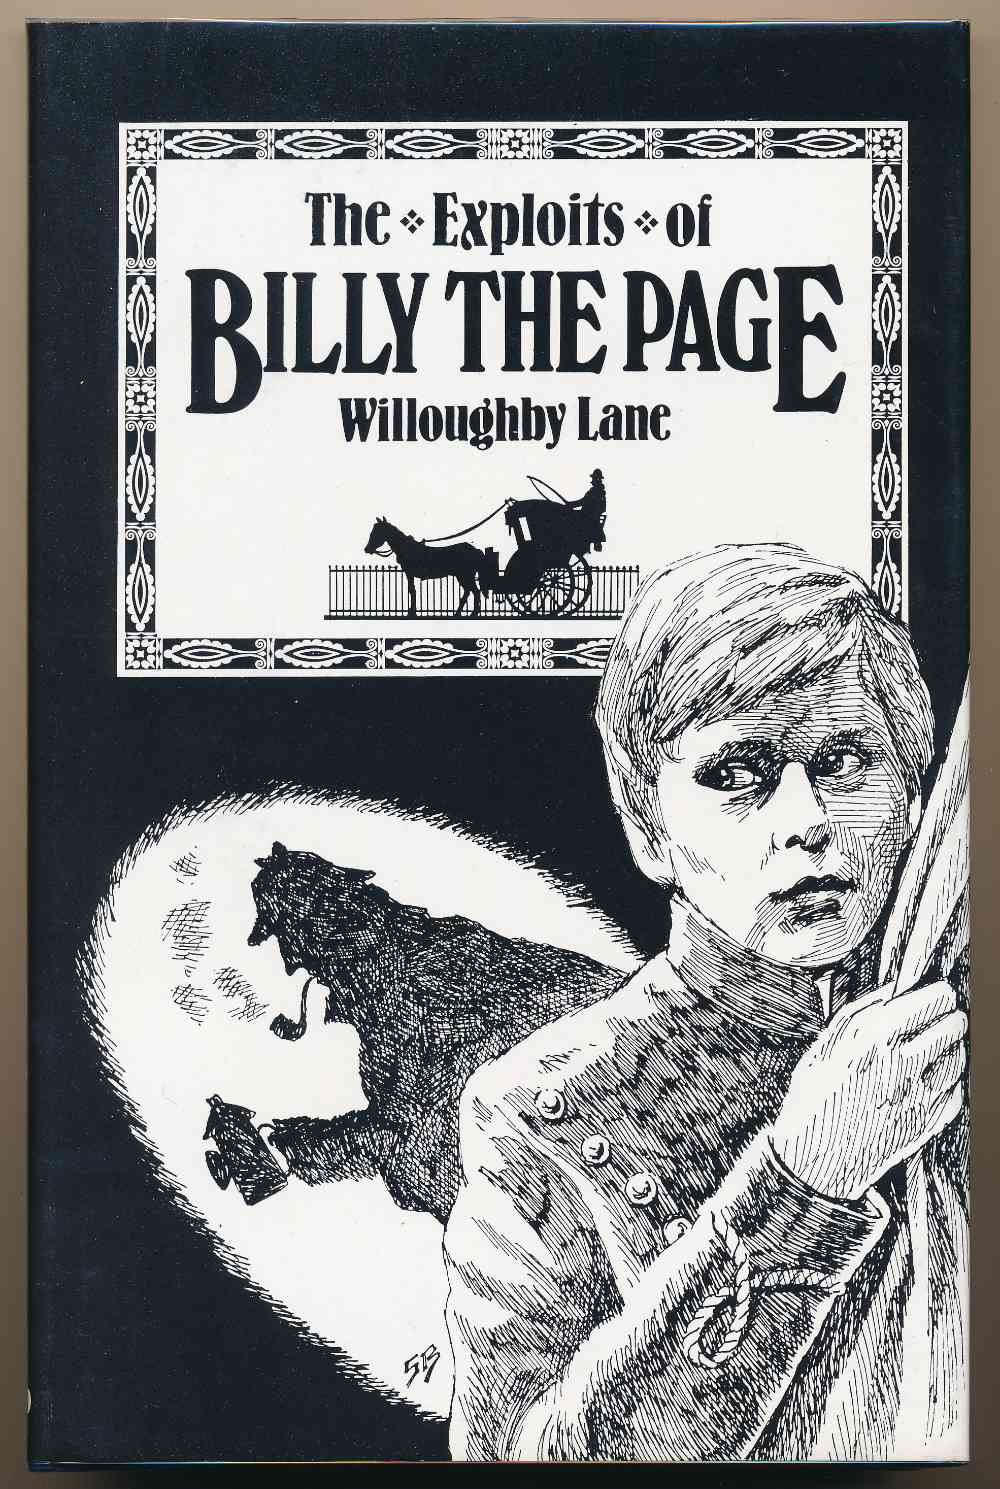 The exploits of Billy the page